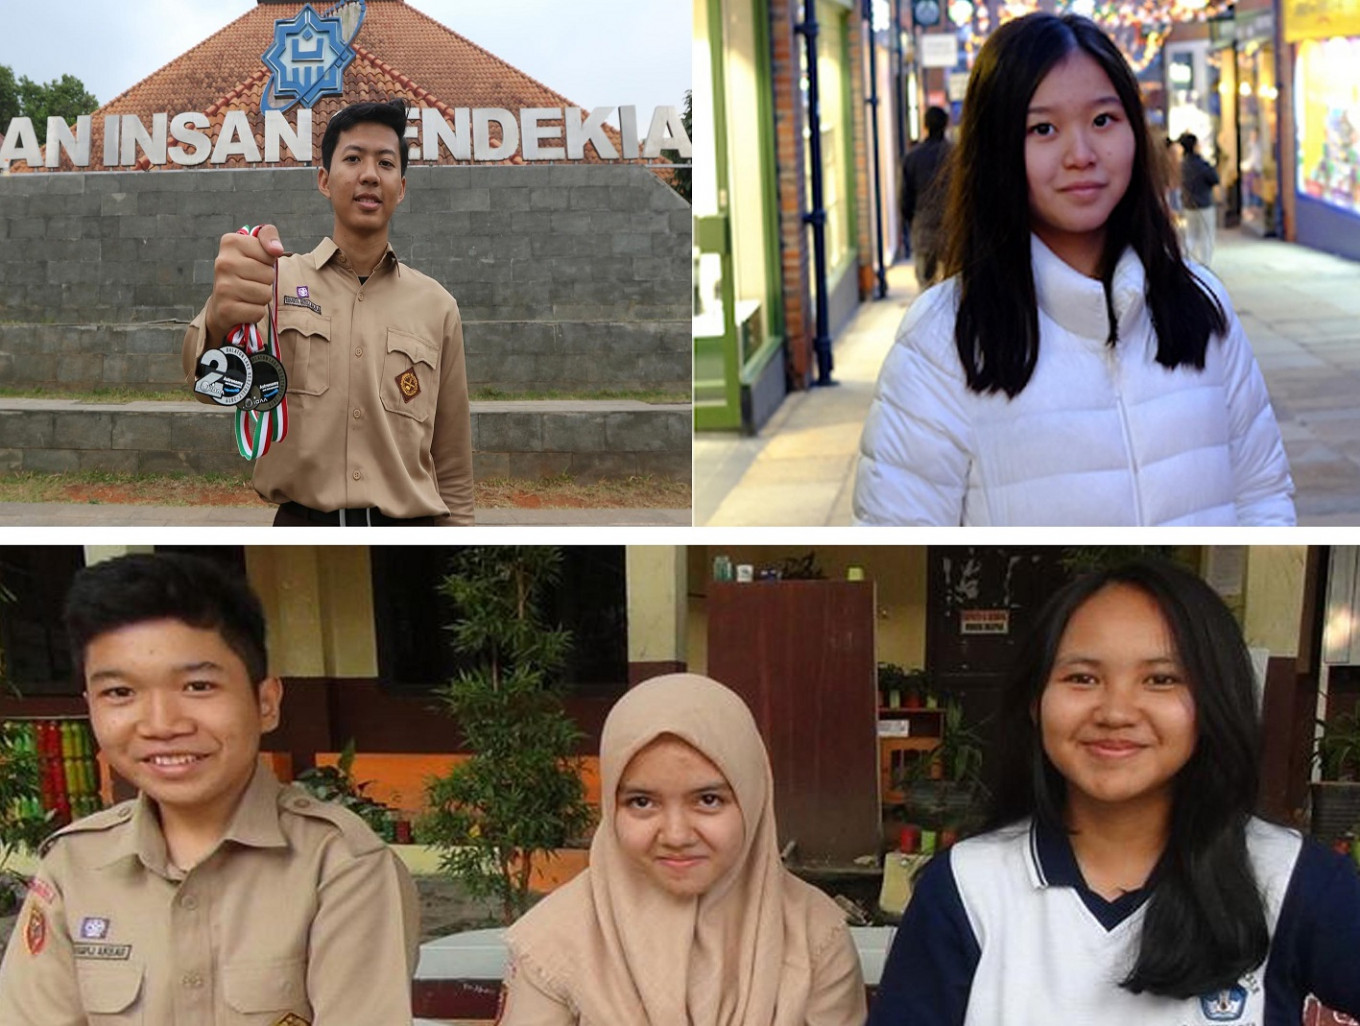 From astronomy to cancer treatment: Indonesian young bright minds make splash on world stage